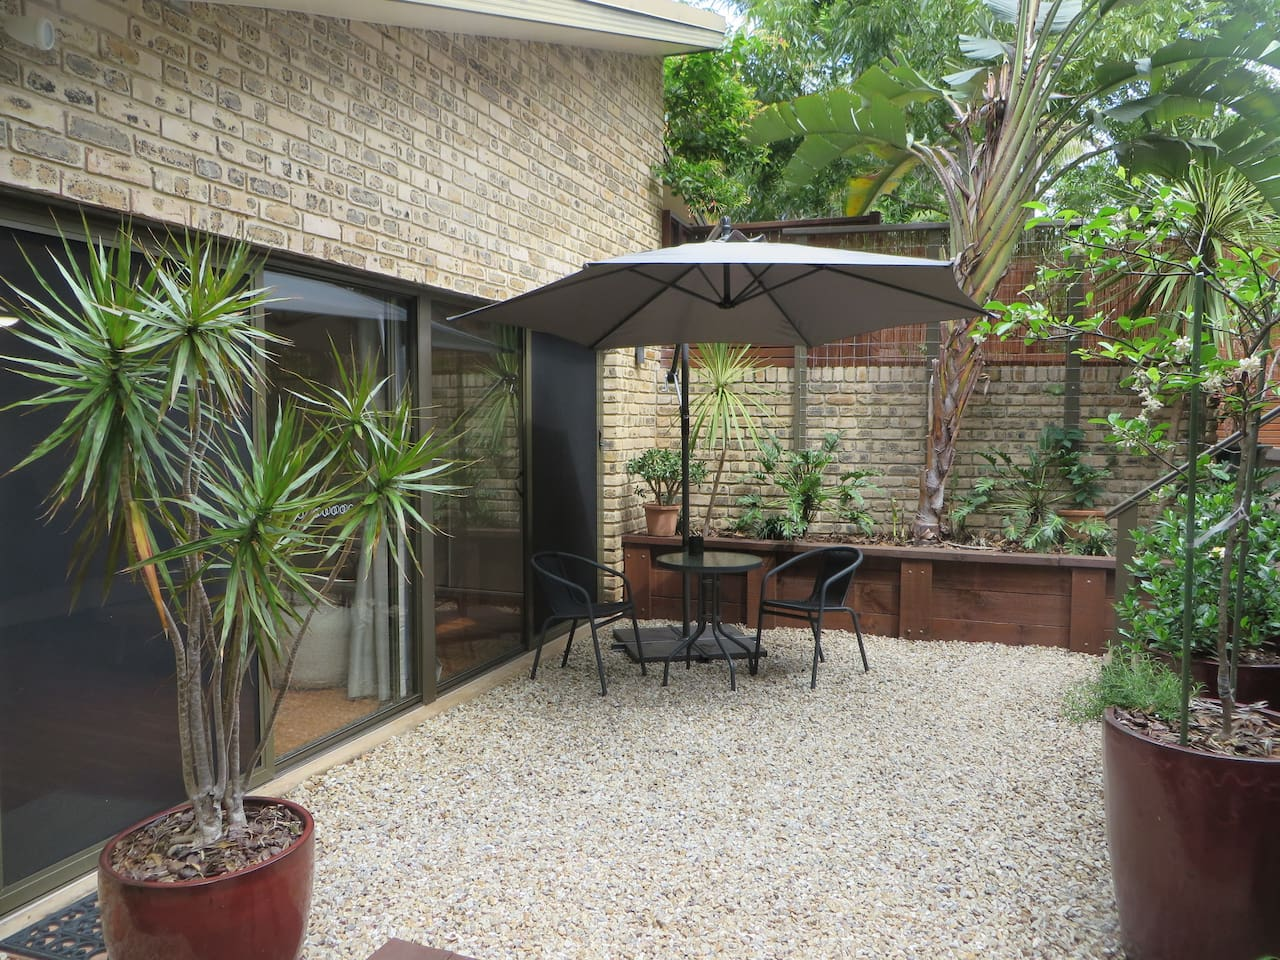 Your private courtyard for relaxing - BBQ and fire pit available on request.